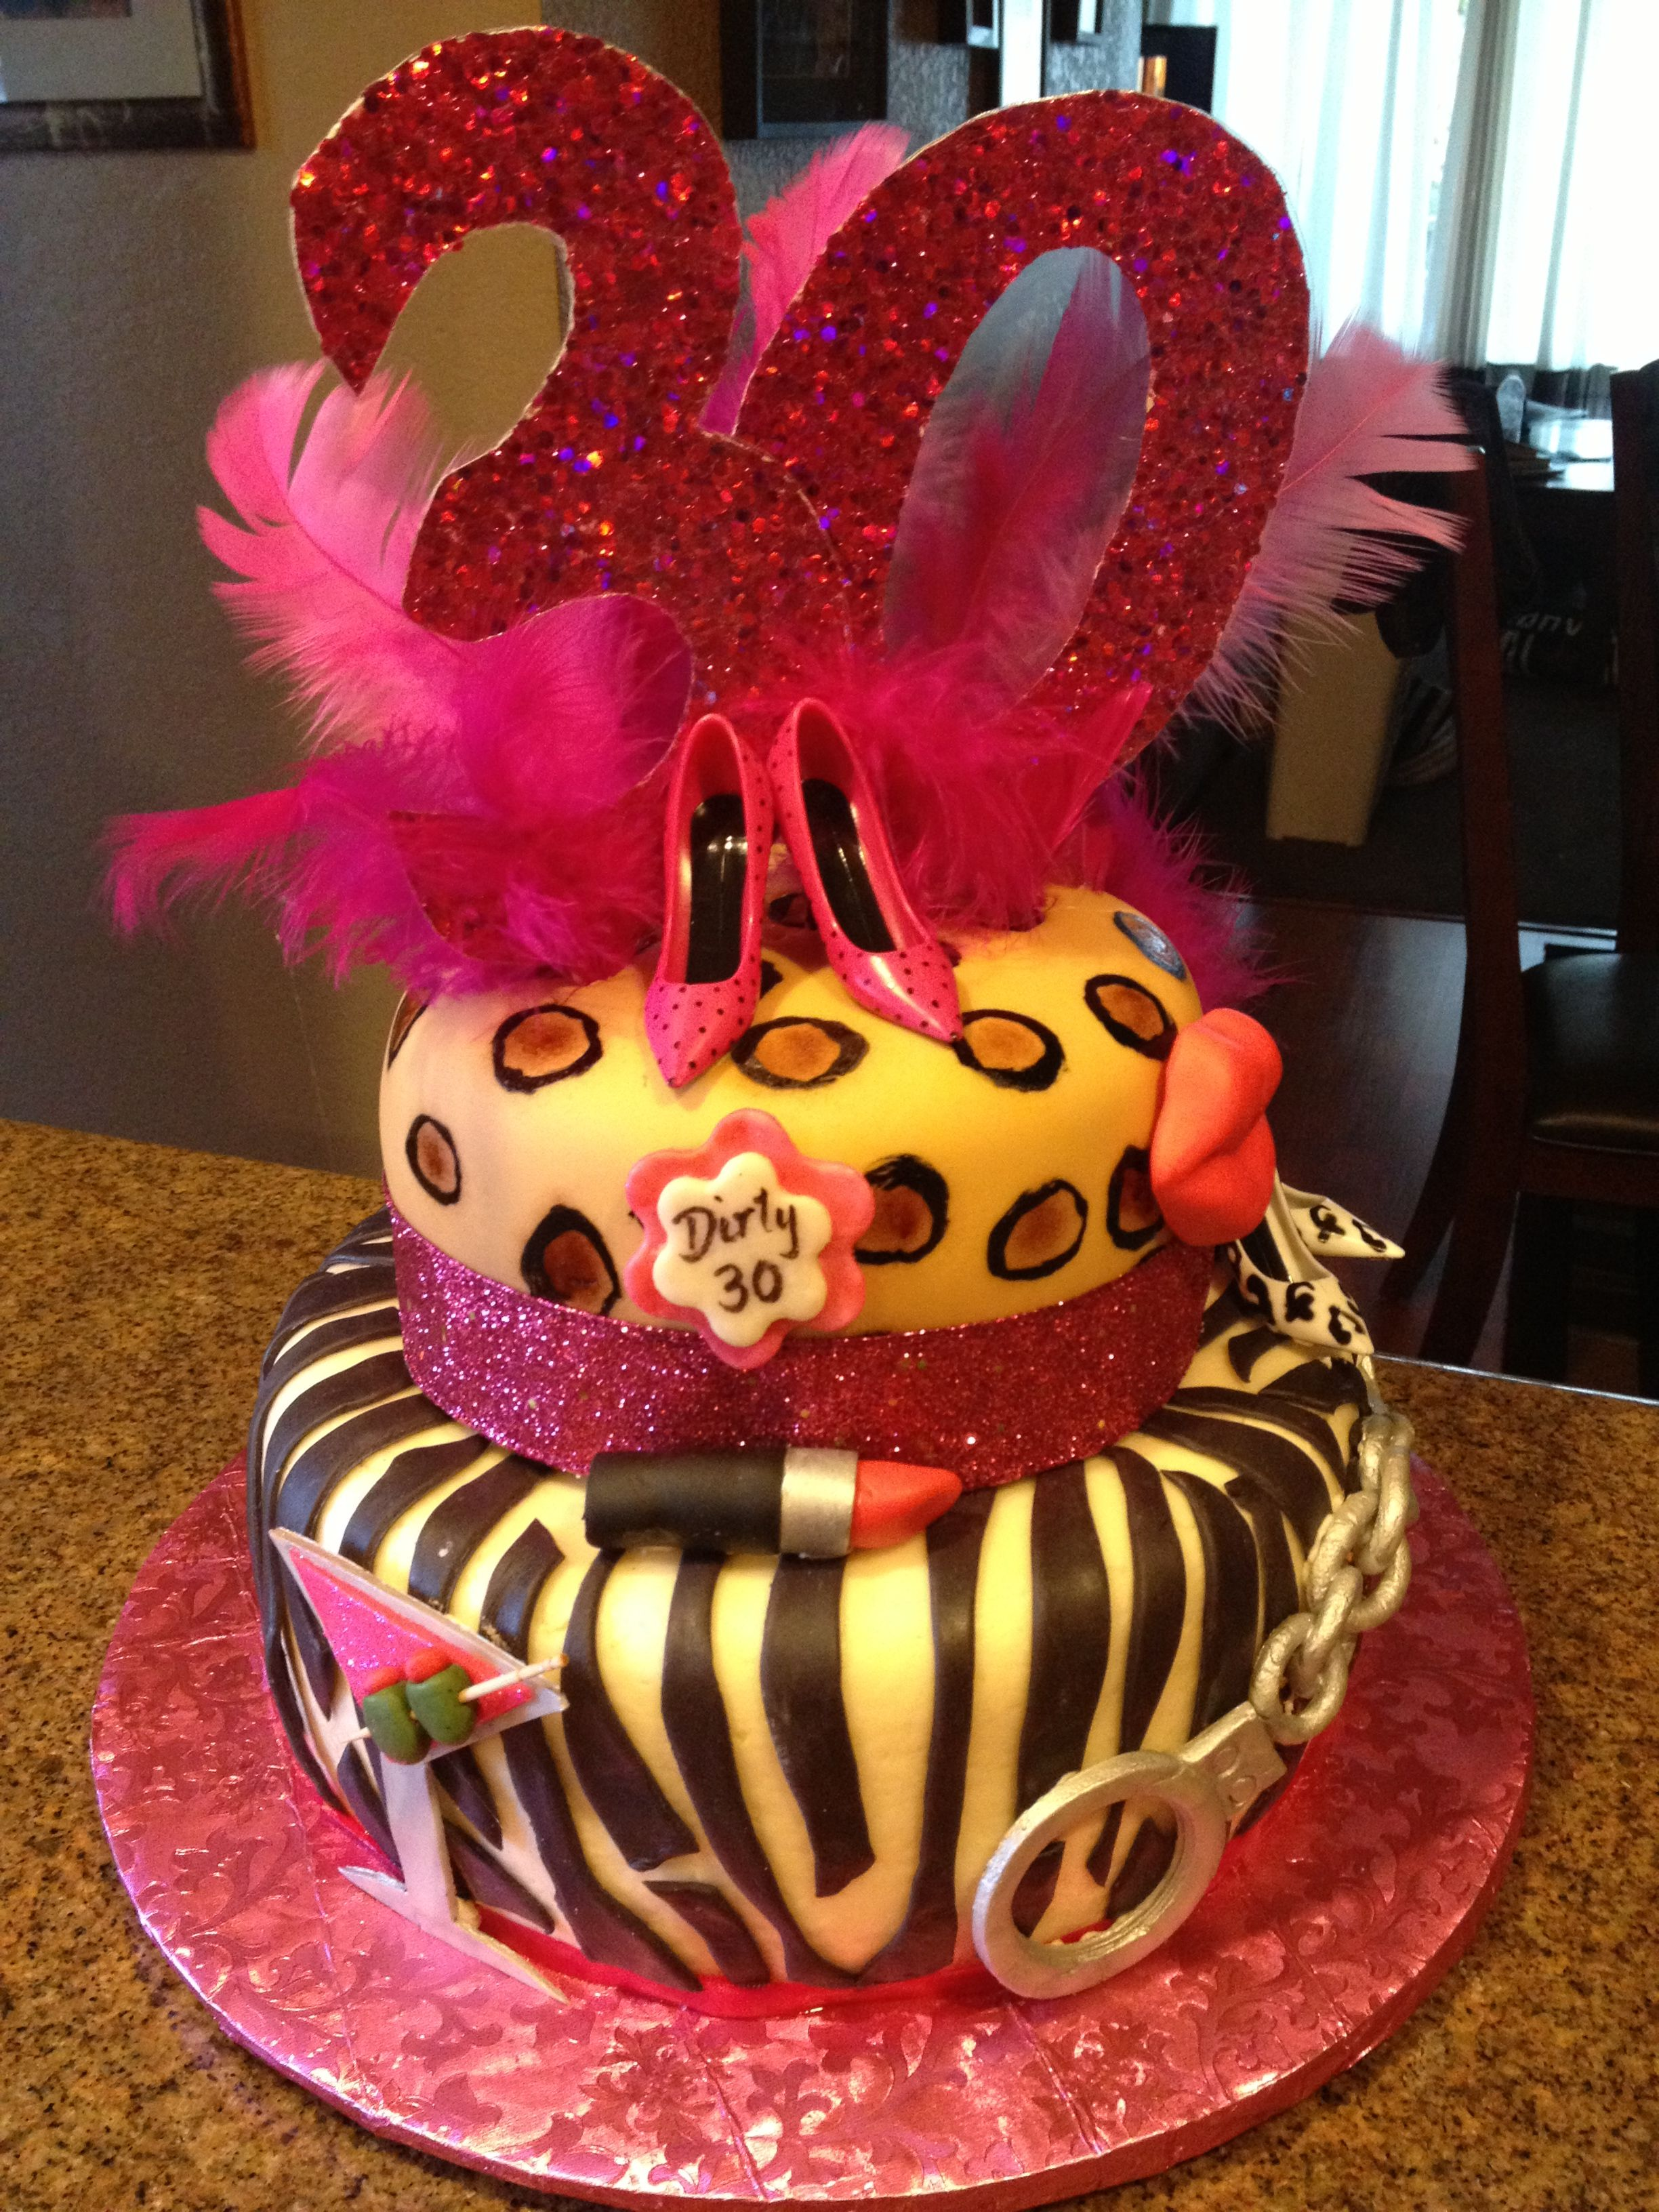 Dirty 30 Birthday Cakethis Is Everything I Love Animal Print Pink And Glitter How Could You Go Wrong